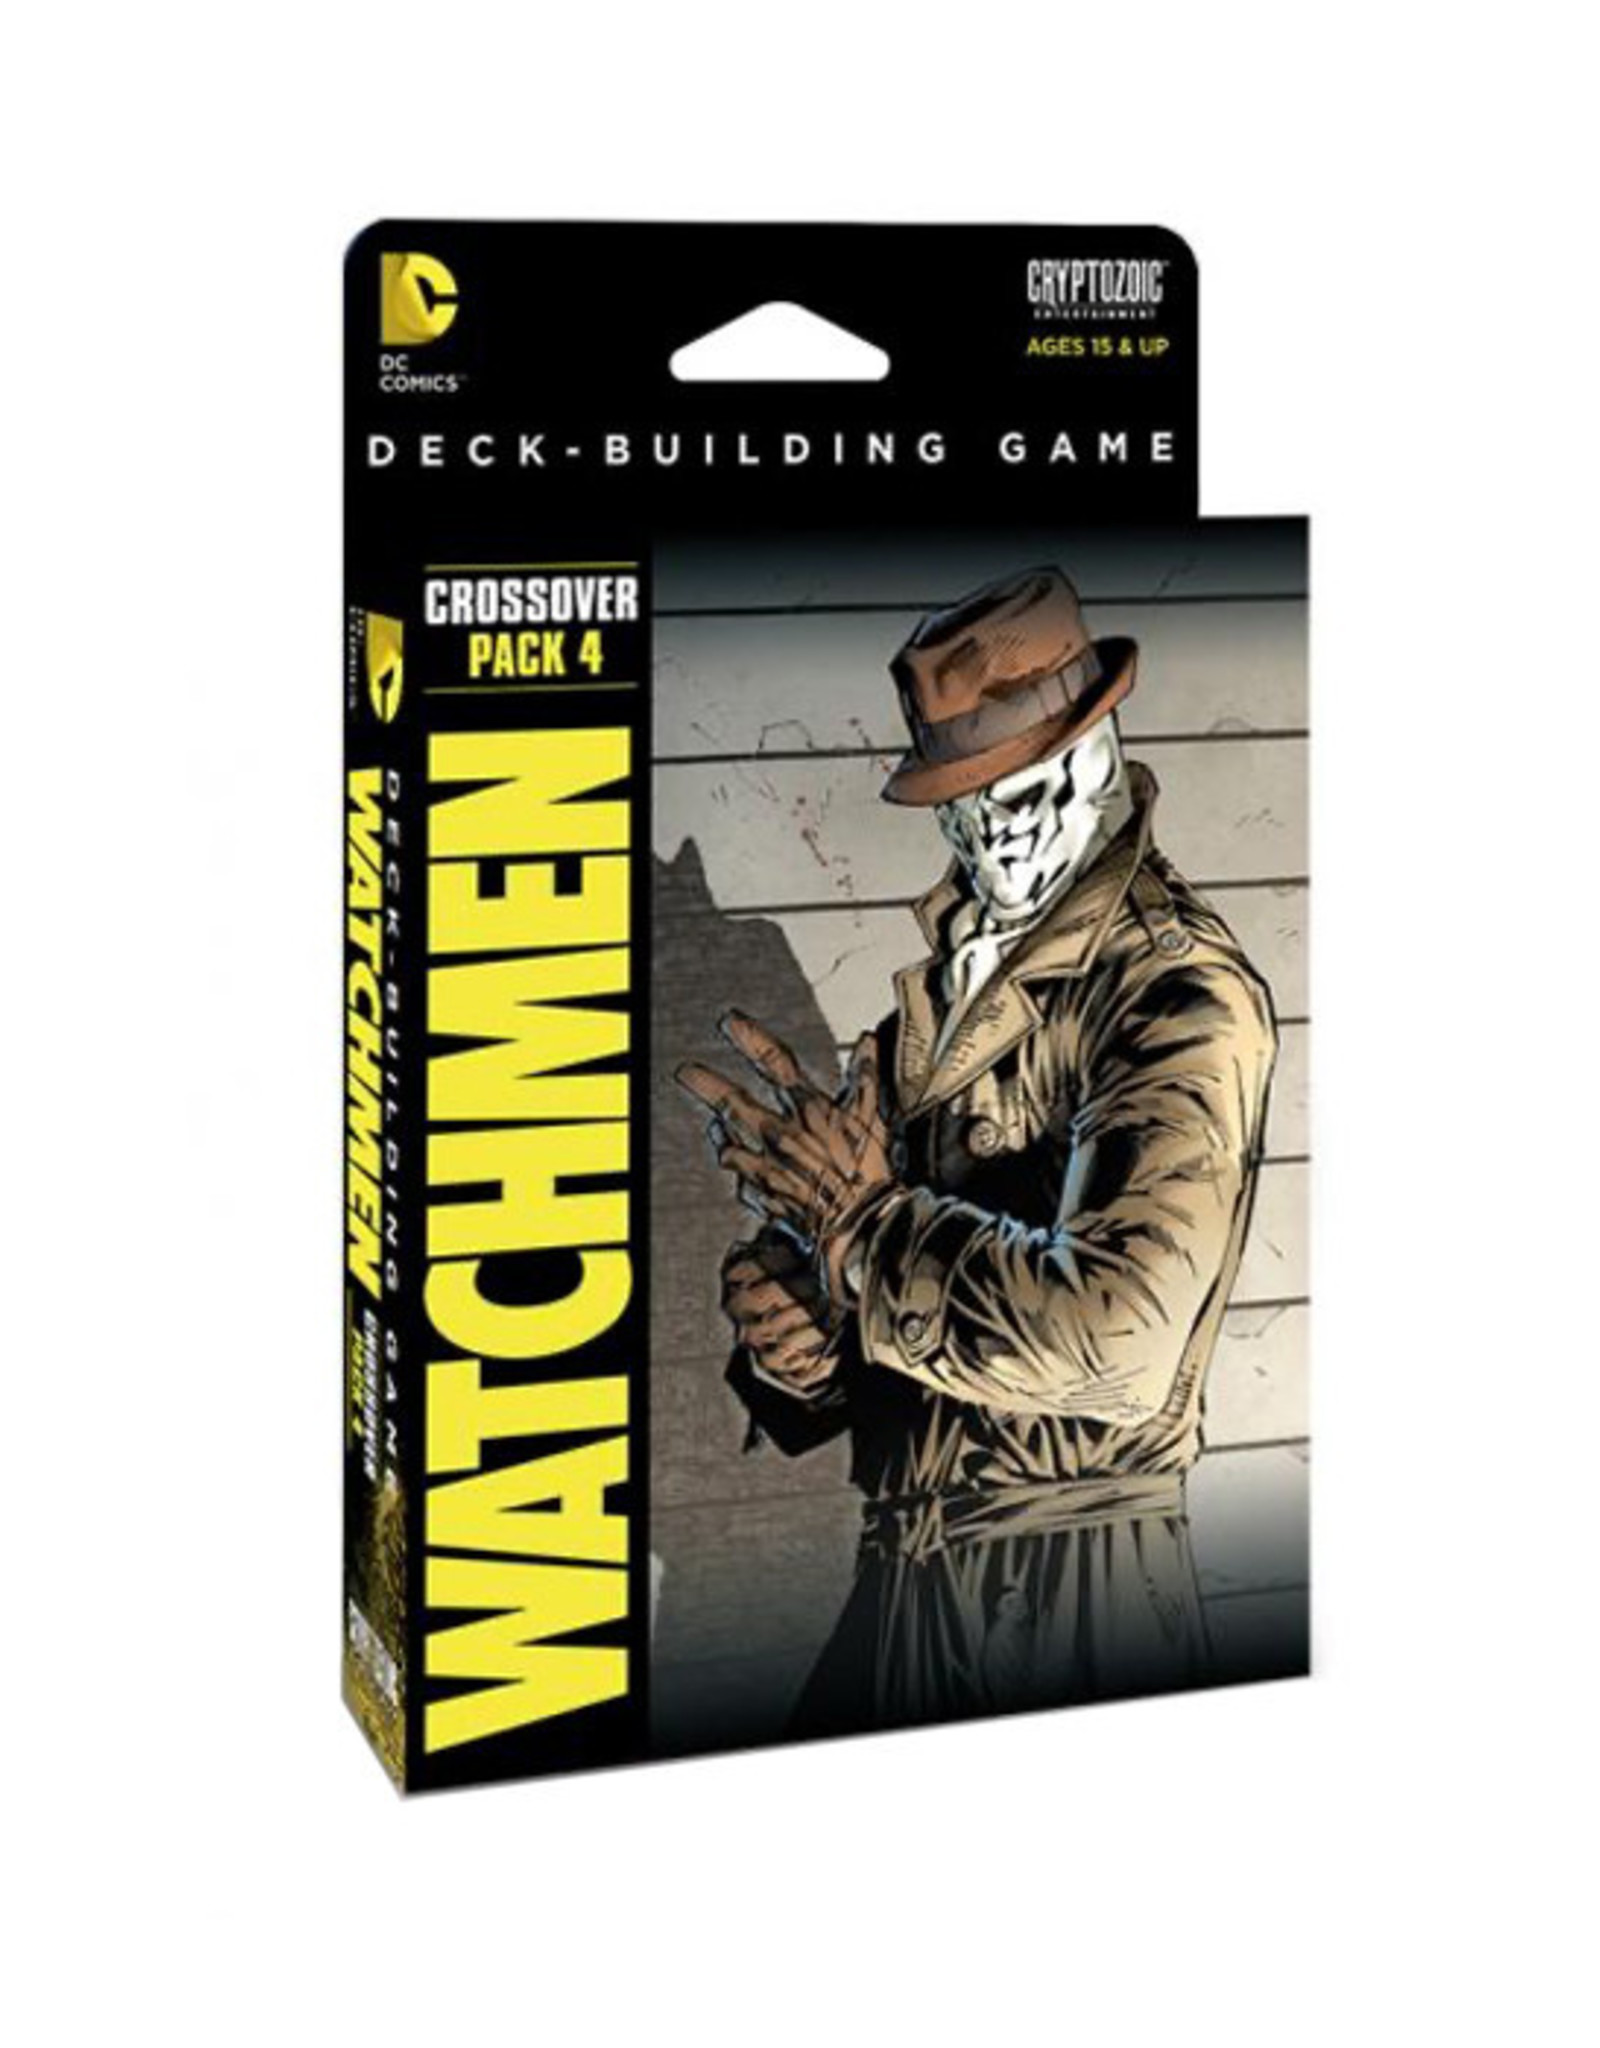 DC Deck Building Game: Crossover Pack 4 - Watchmen